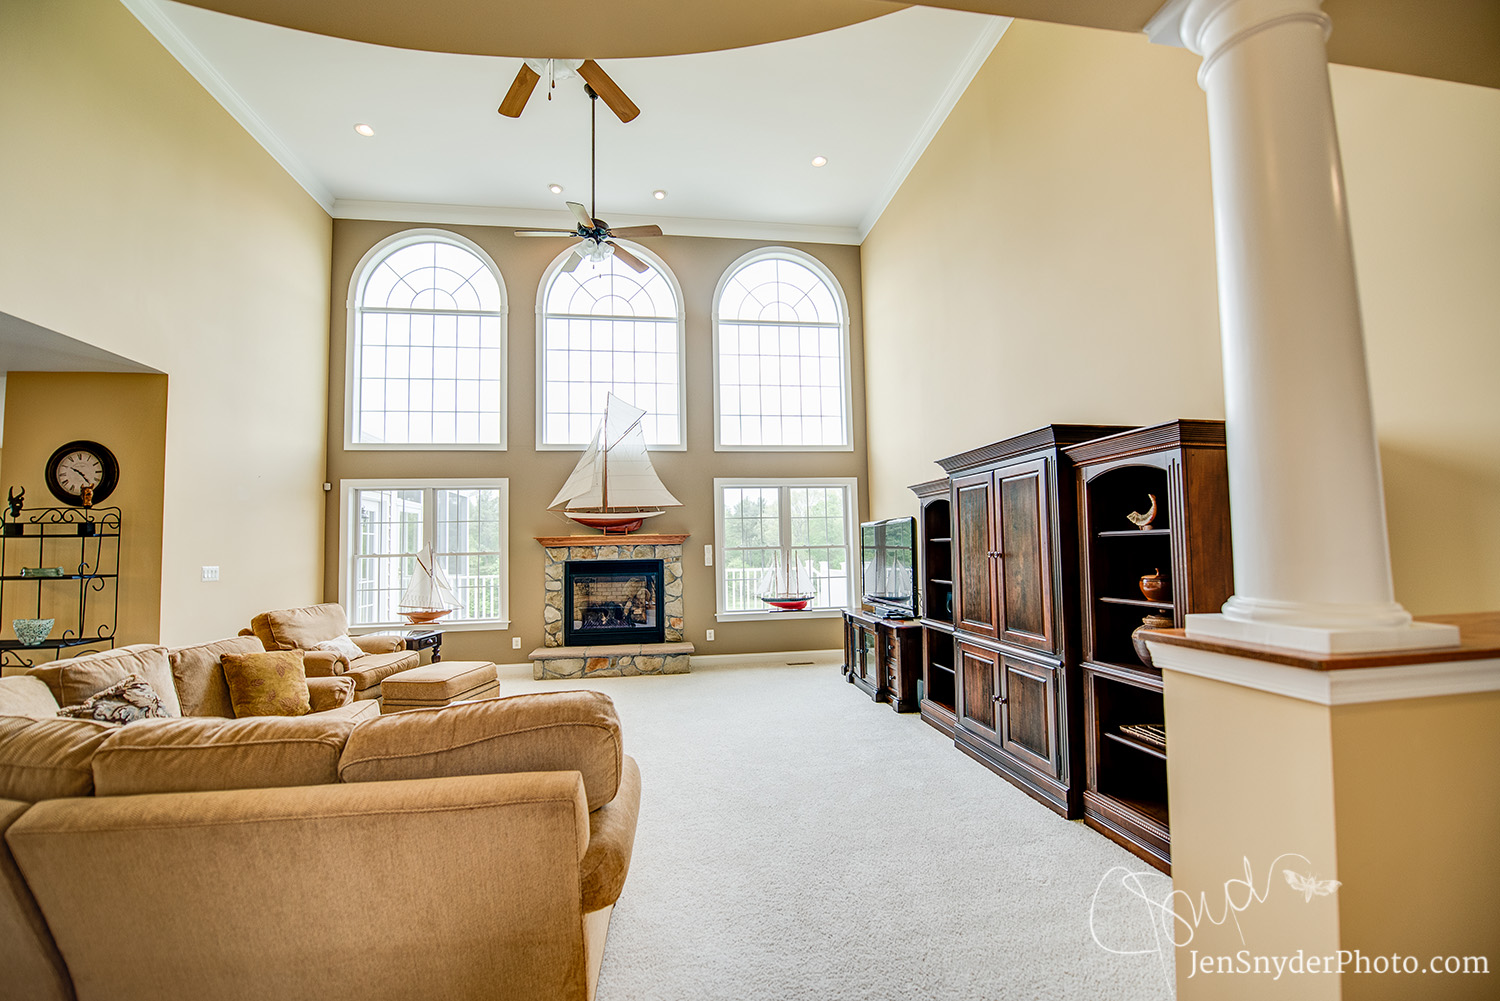 maryland professional real estate photography by Jen Snyder in Harford County http://www.jensnyderphoto.com